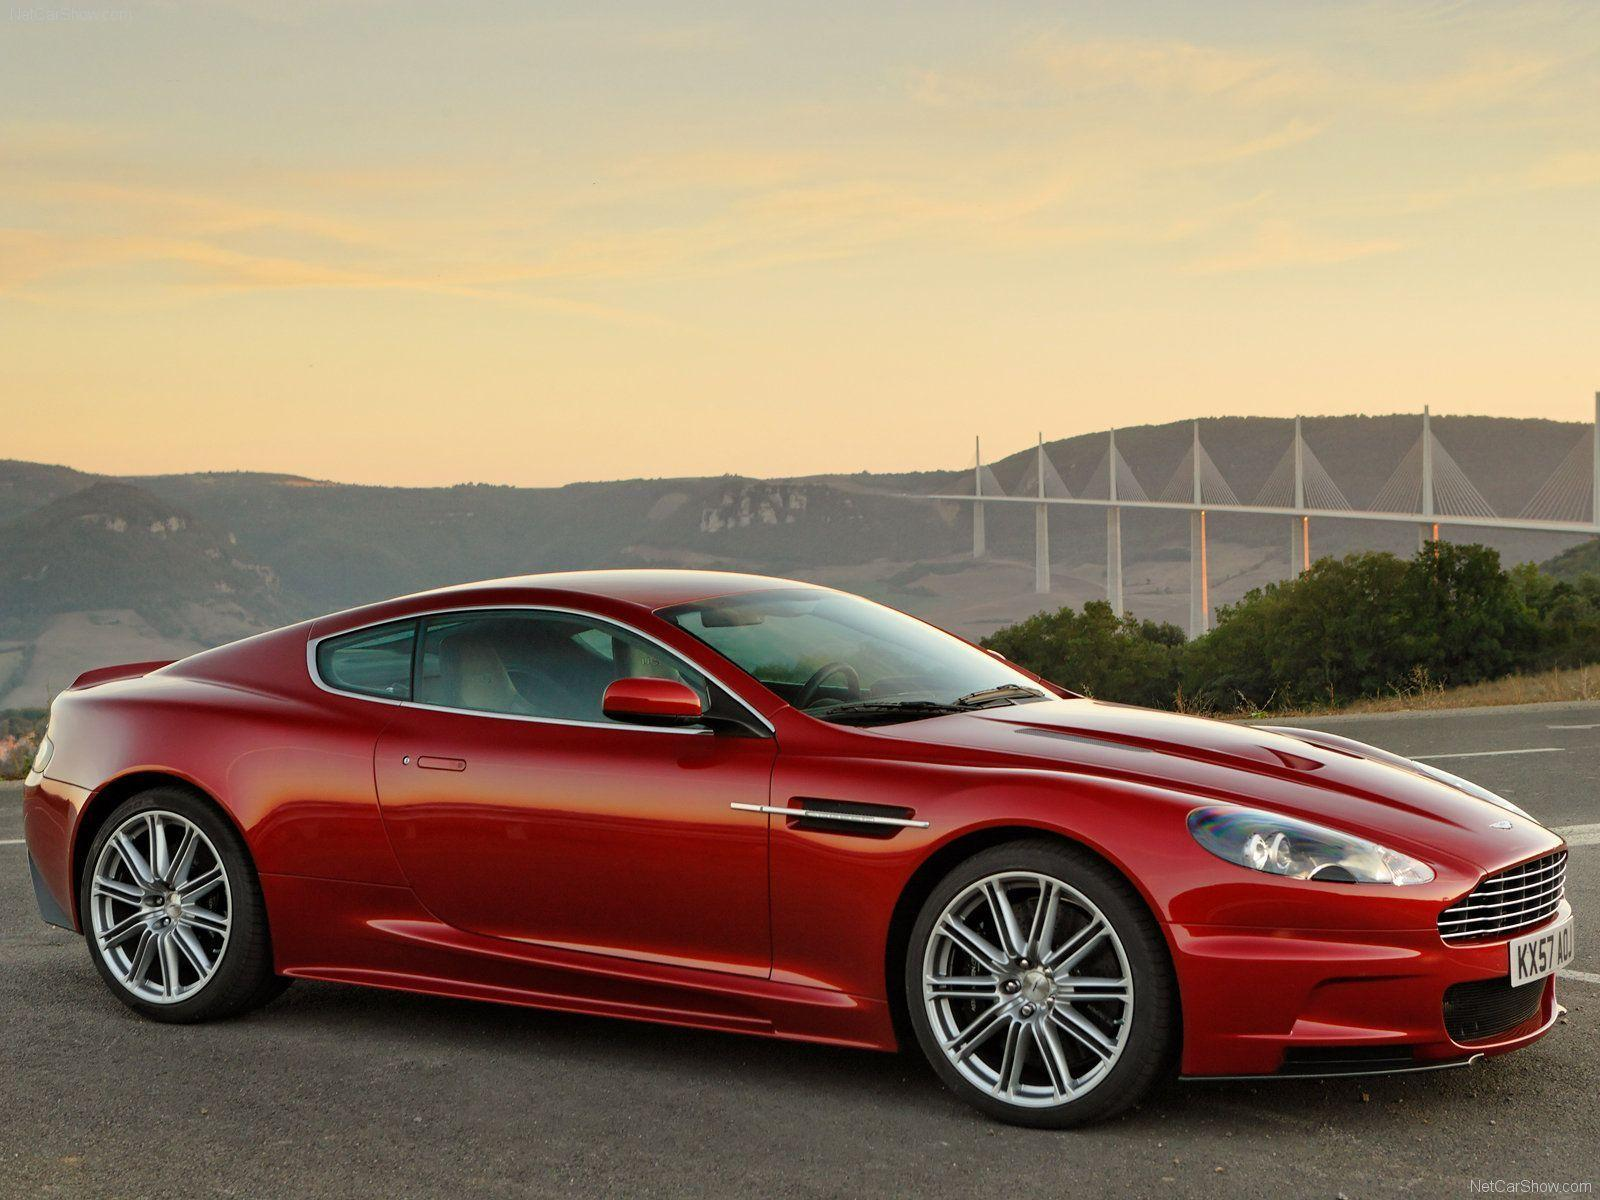 Check this out! our new amazing Aston Martin DBS wallpapers